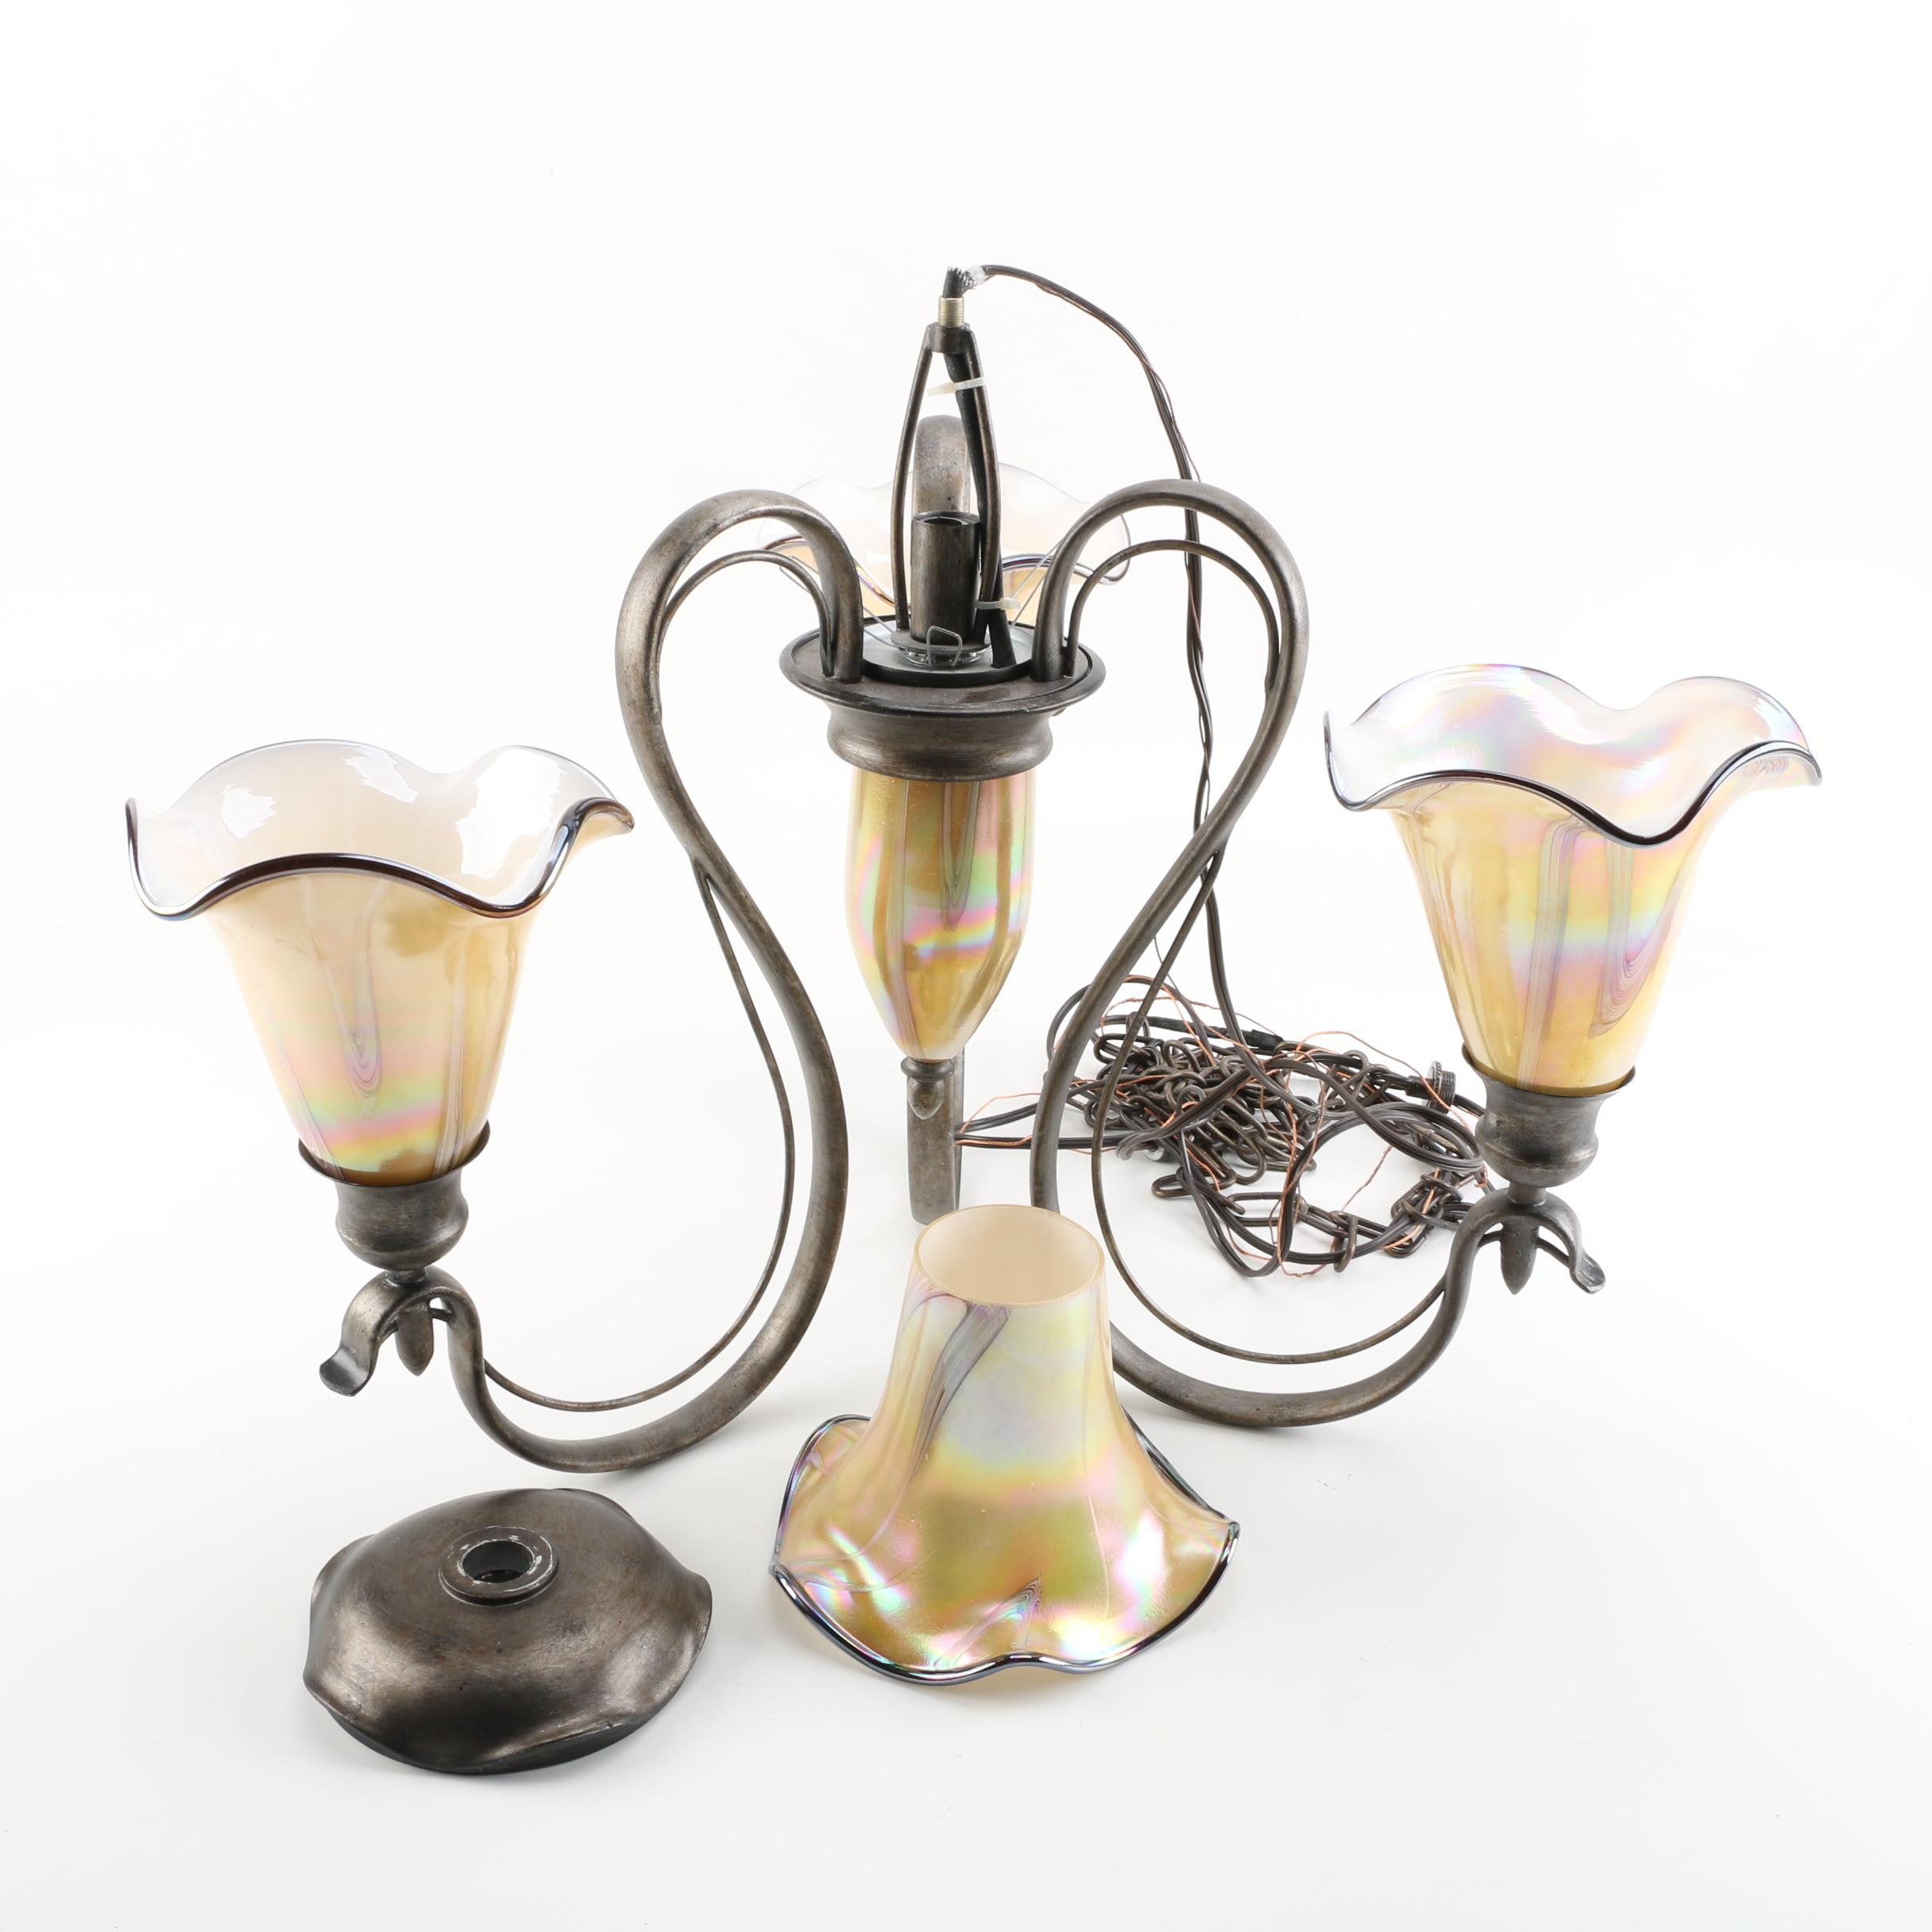 Vintage Art Nouveau-Style Chandelier with Fluted Iridescent Glass Shades